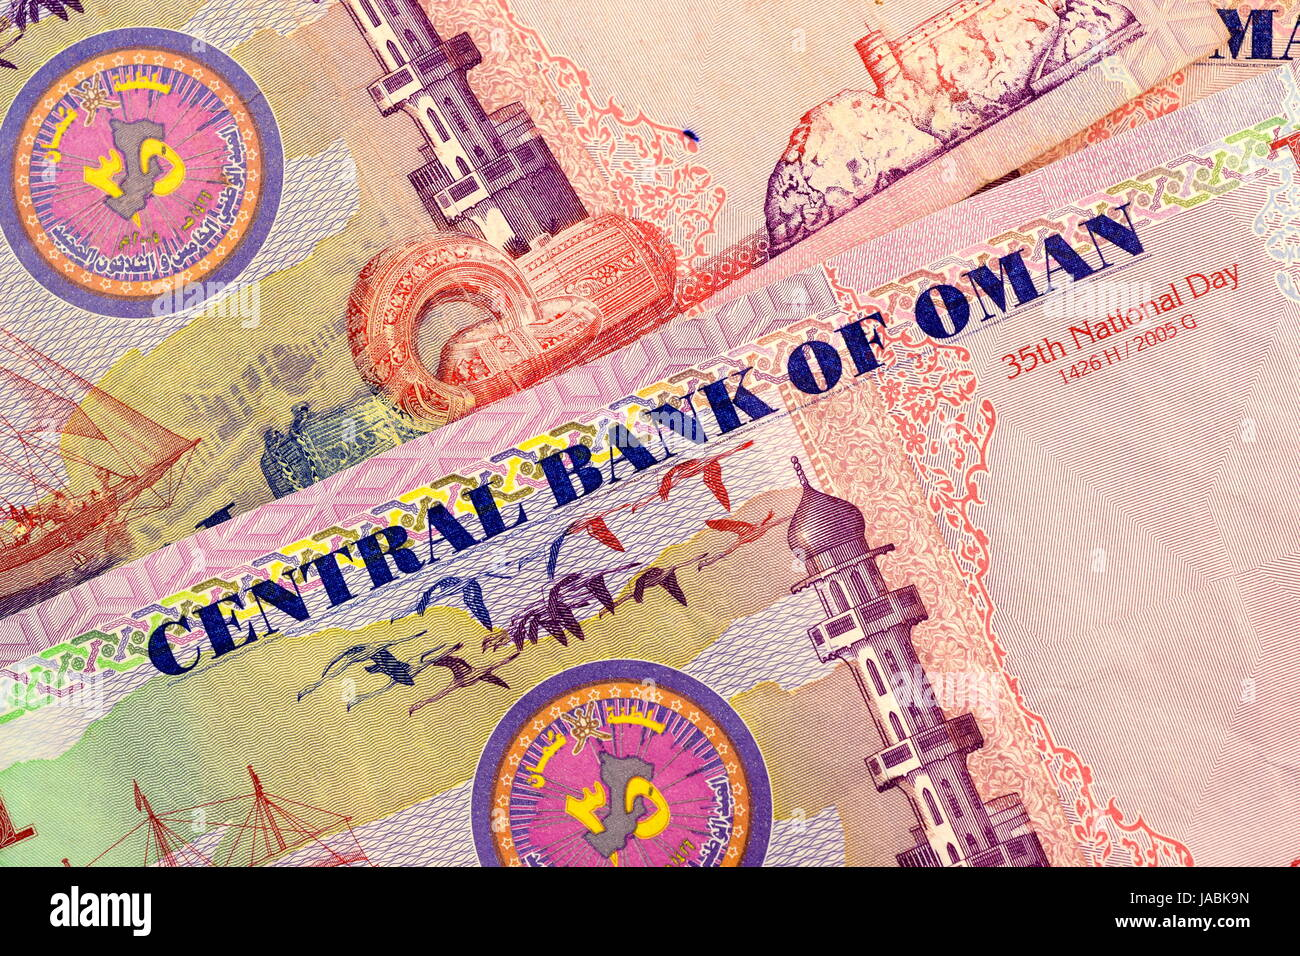 Currency of Oman: Omani Riyal